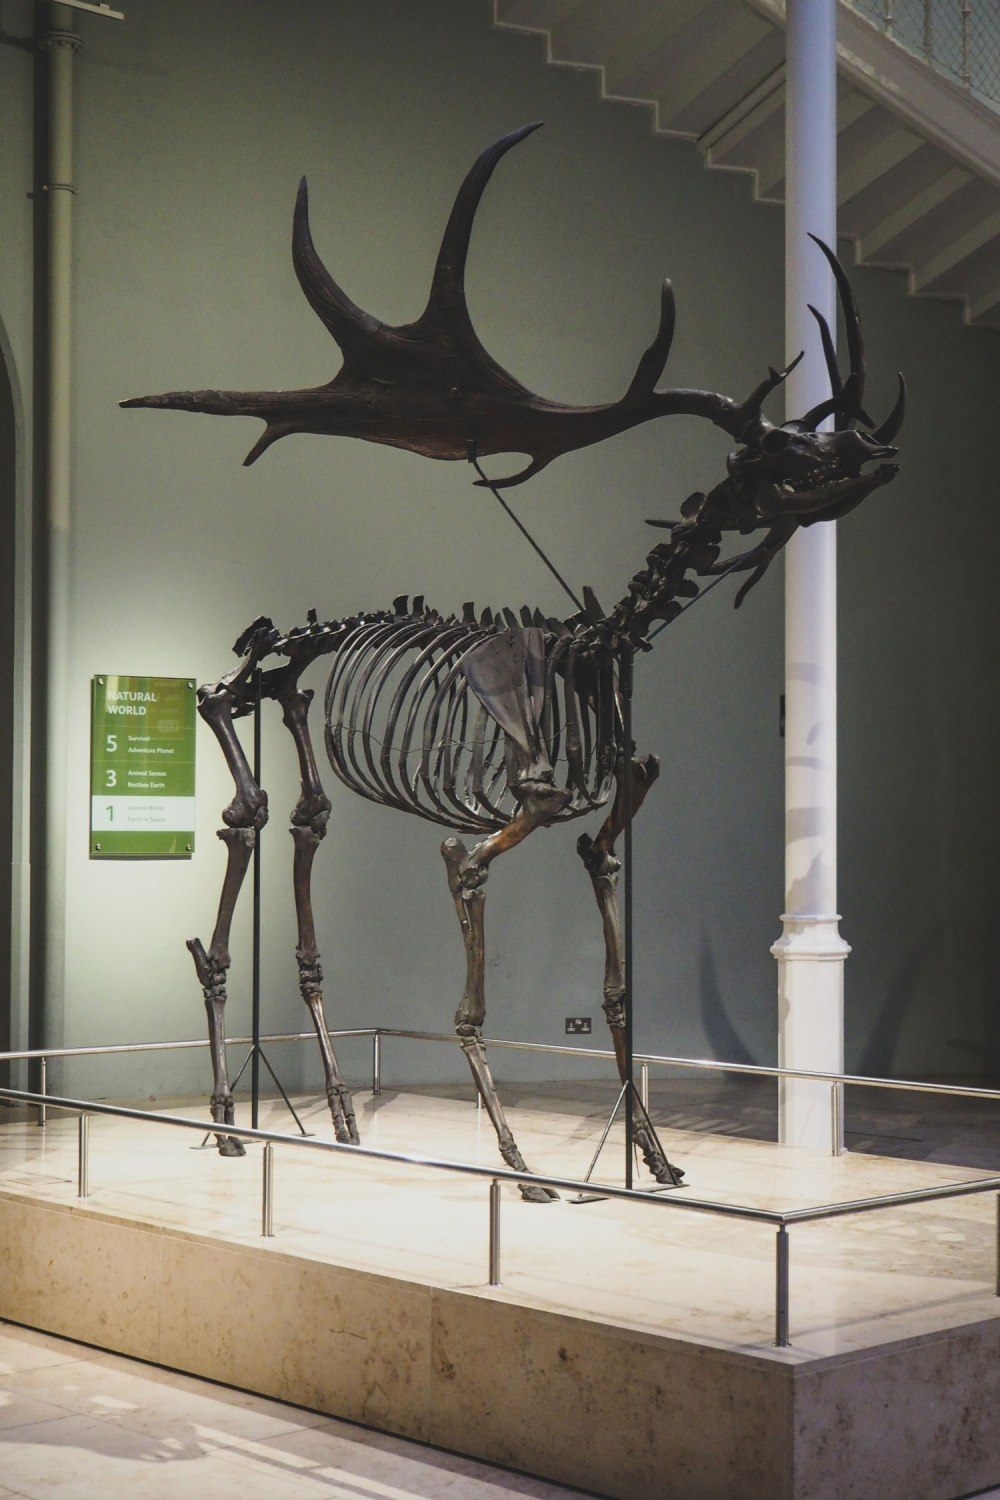 National-Museum-of-Scotland-Edinburgh (3)